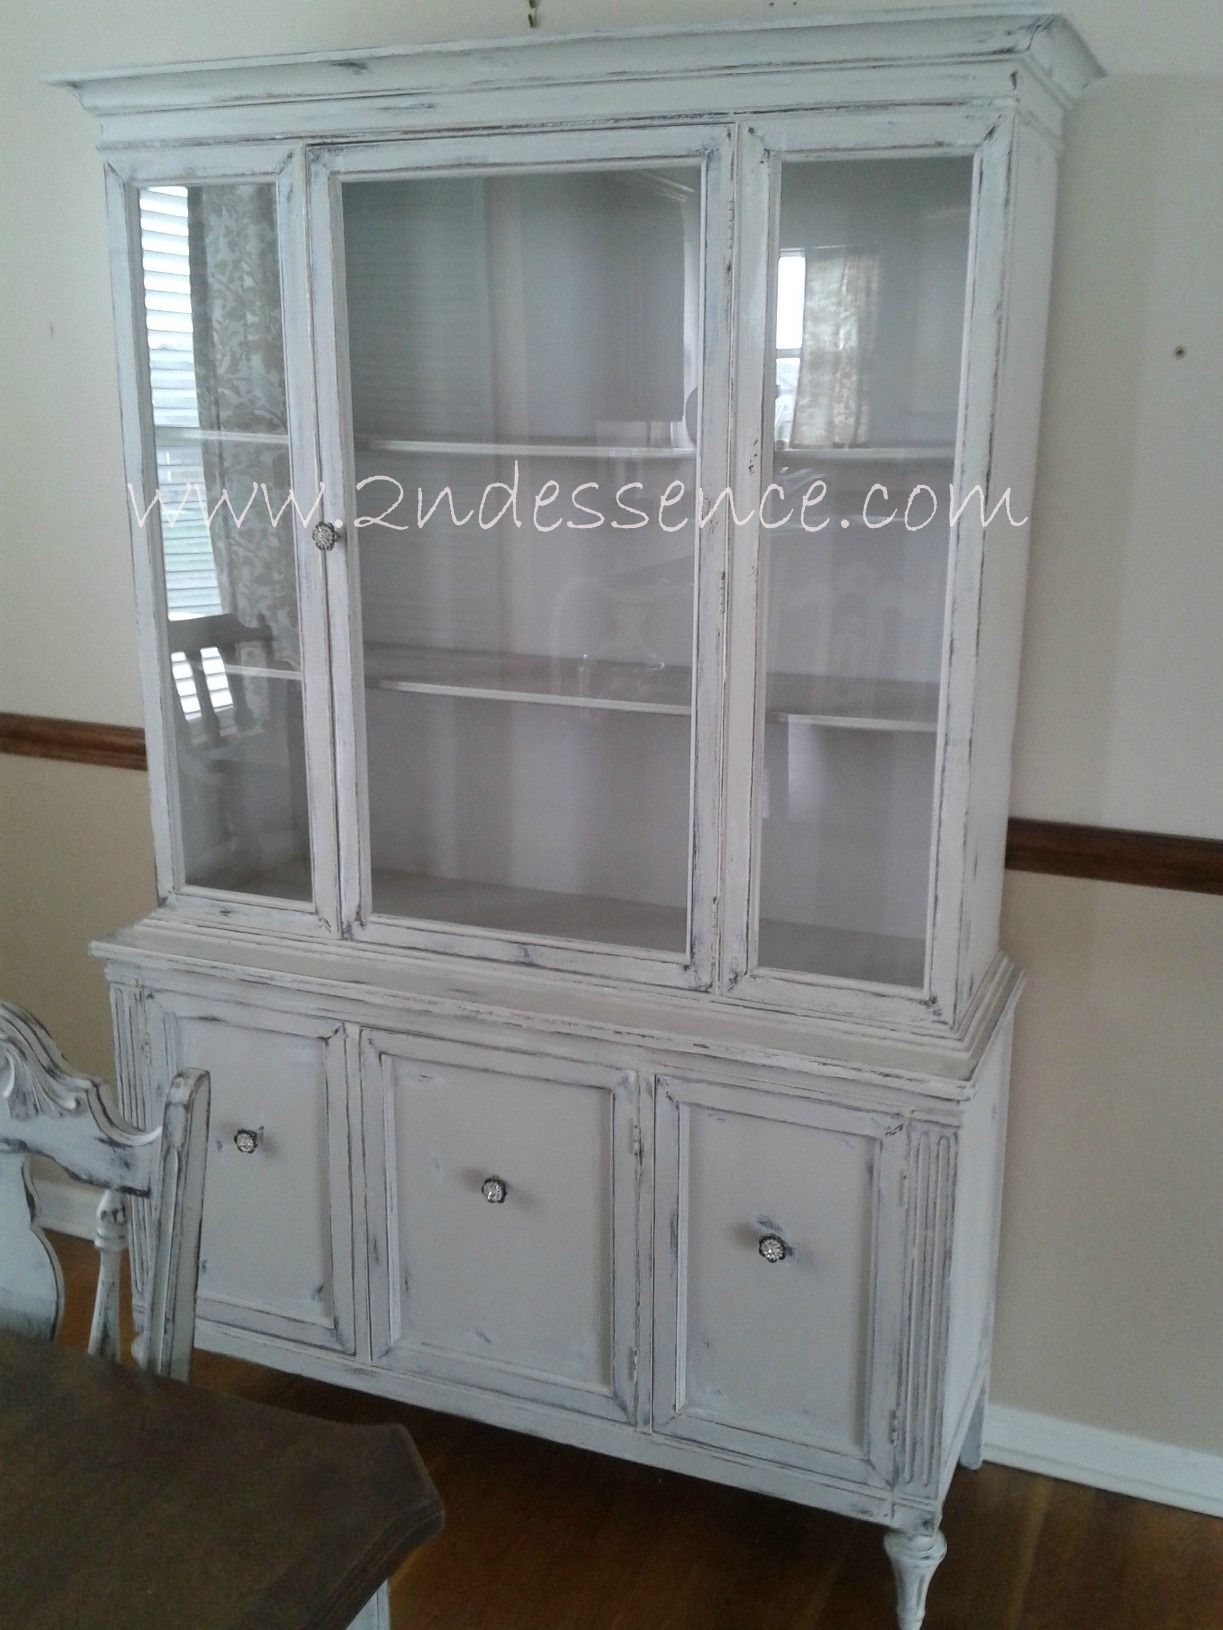 shabby chic antique china cabinet cotton grey 2nd essence portfolio antique china cabinets. Black Bedroom Furniture Sets. Home Design Ideas